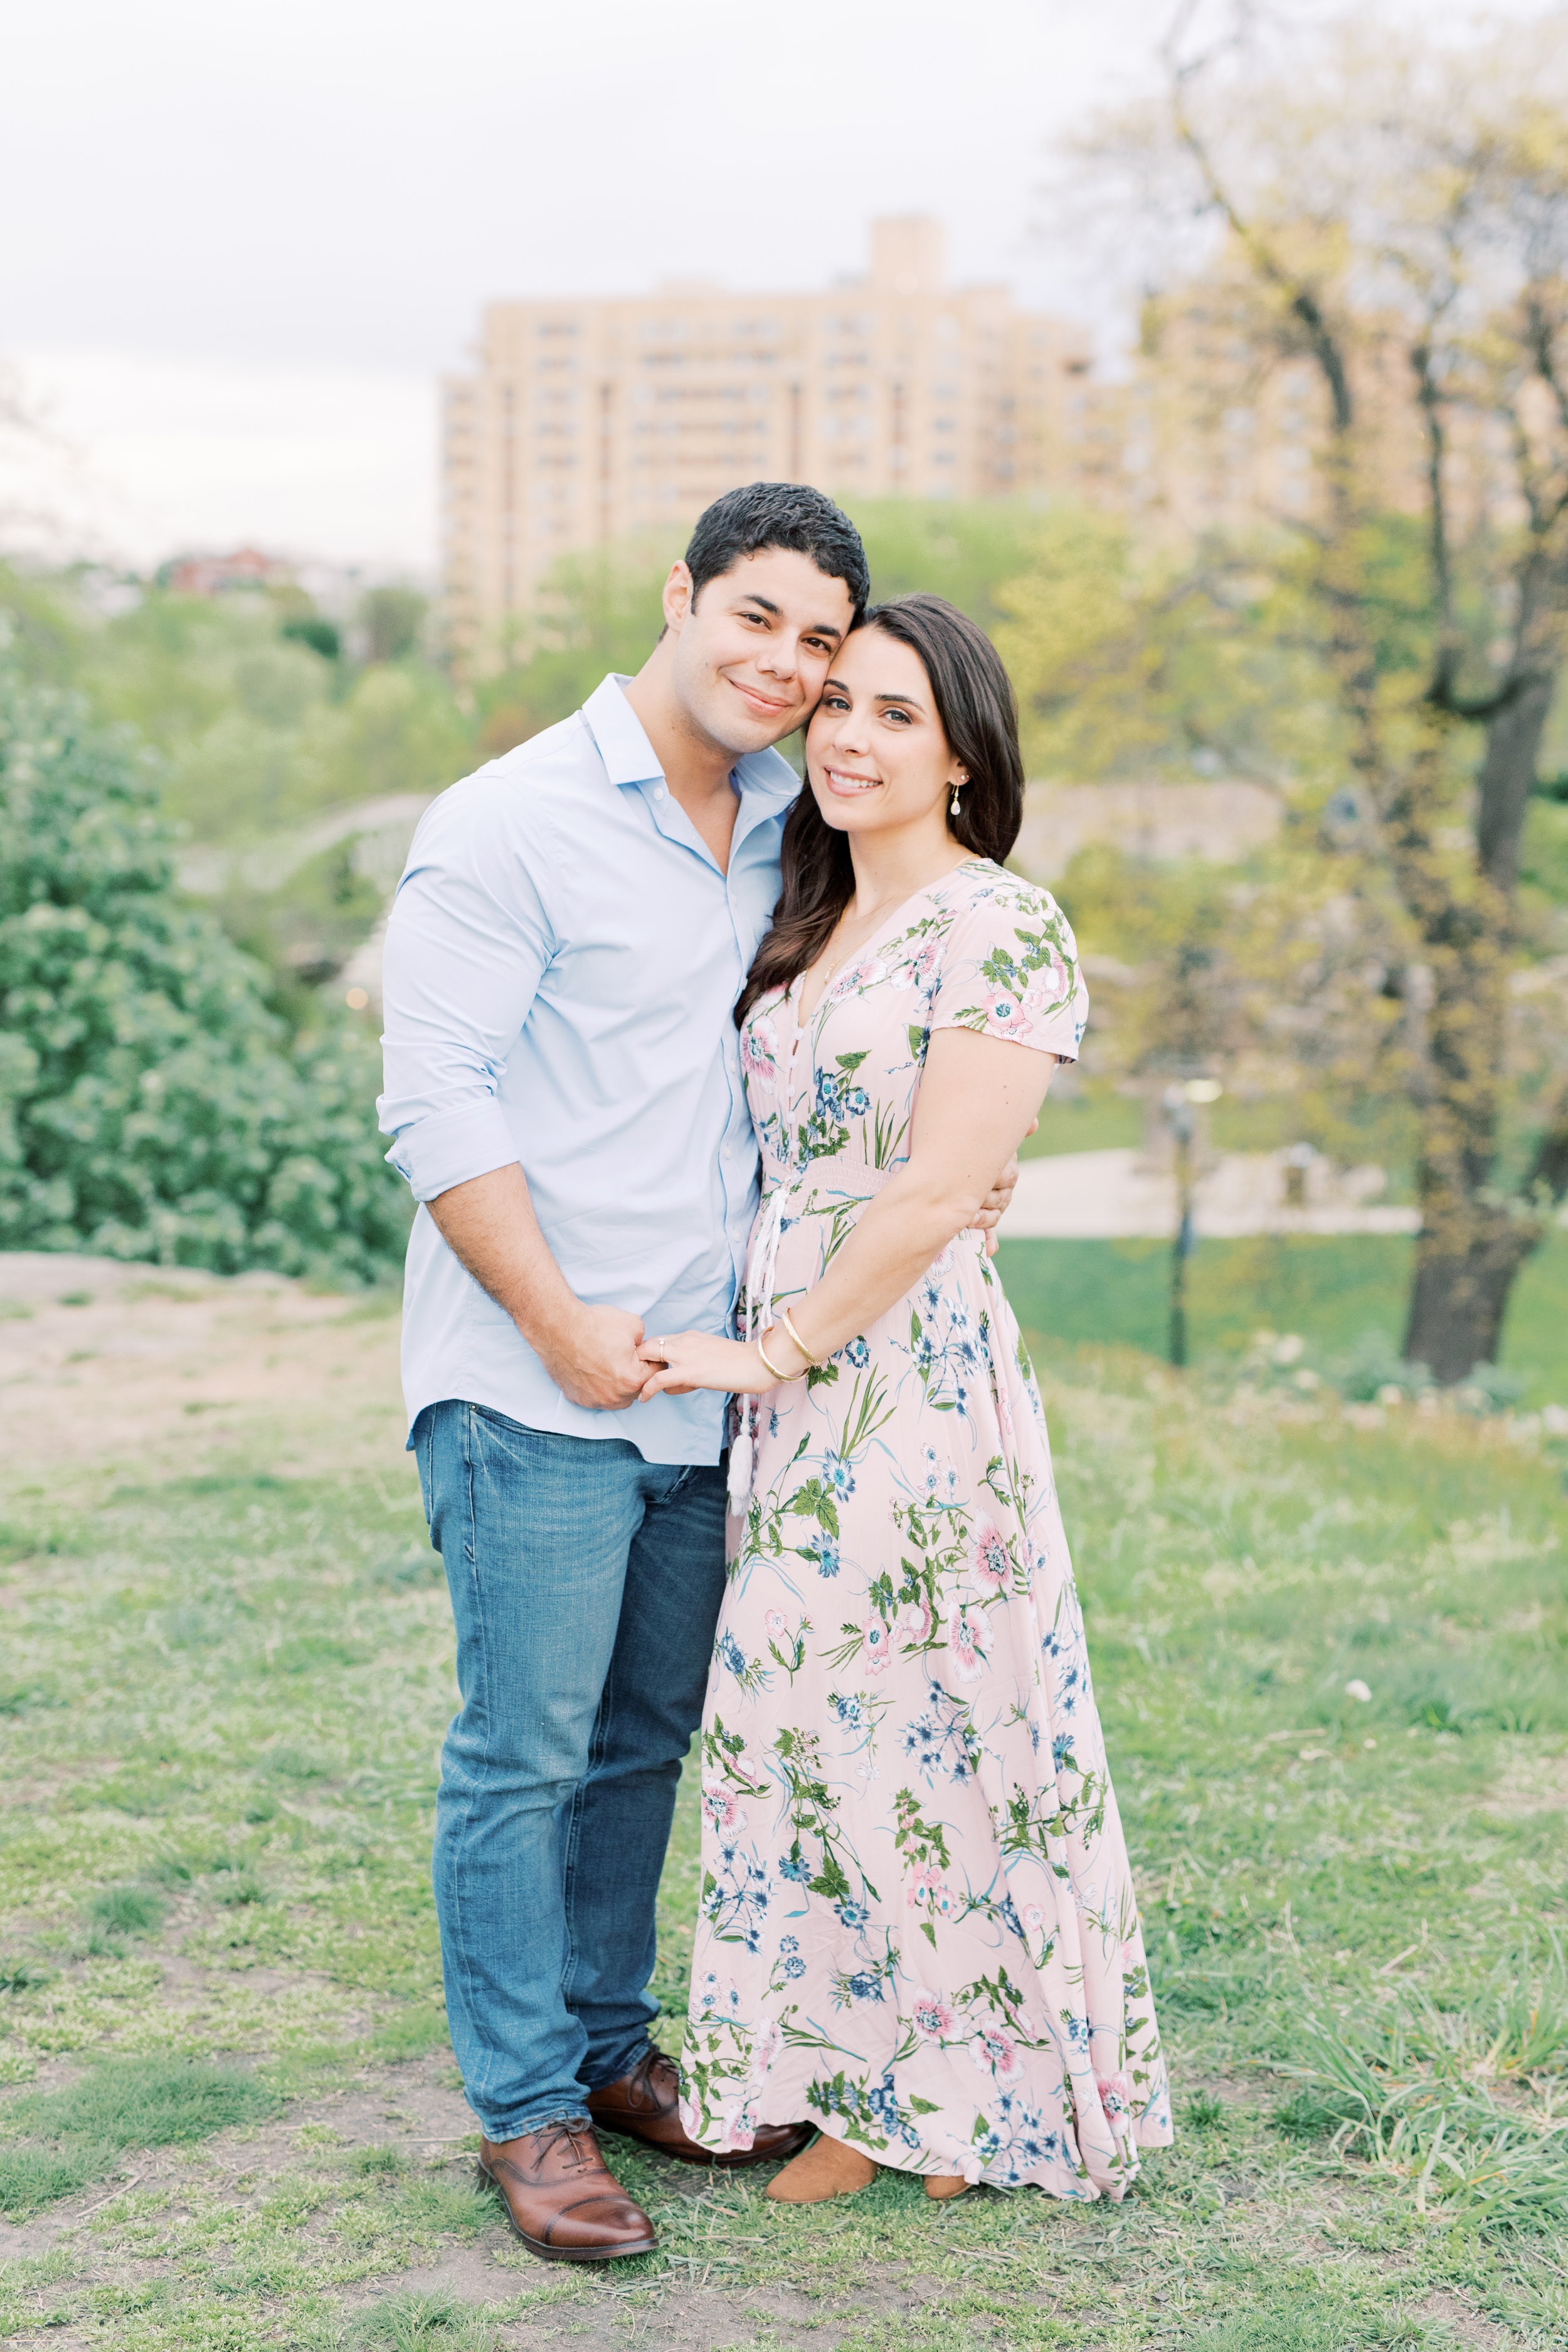 haley-richter-photography-spring-engagement-session-philadelphia-museum-of-art-flowers-picnic-70.jpg